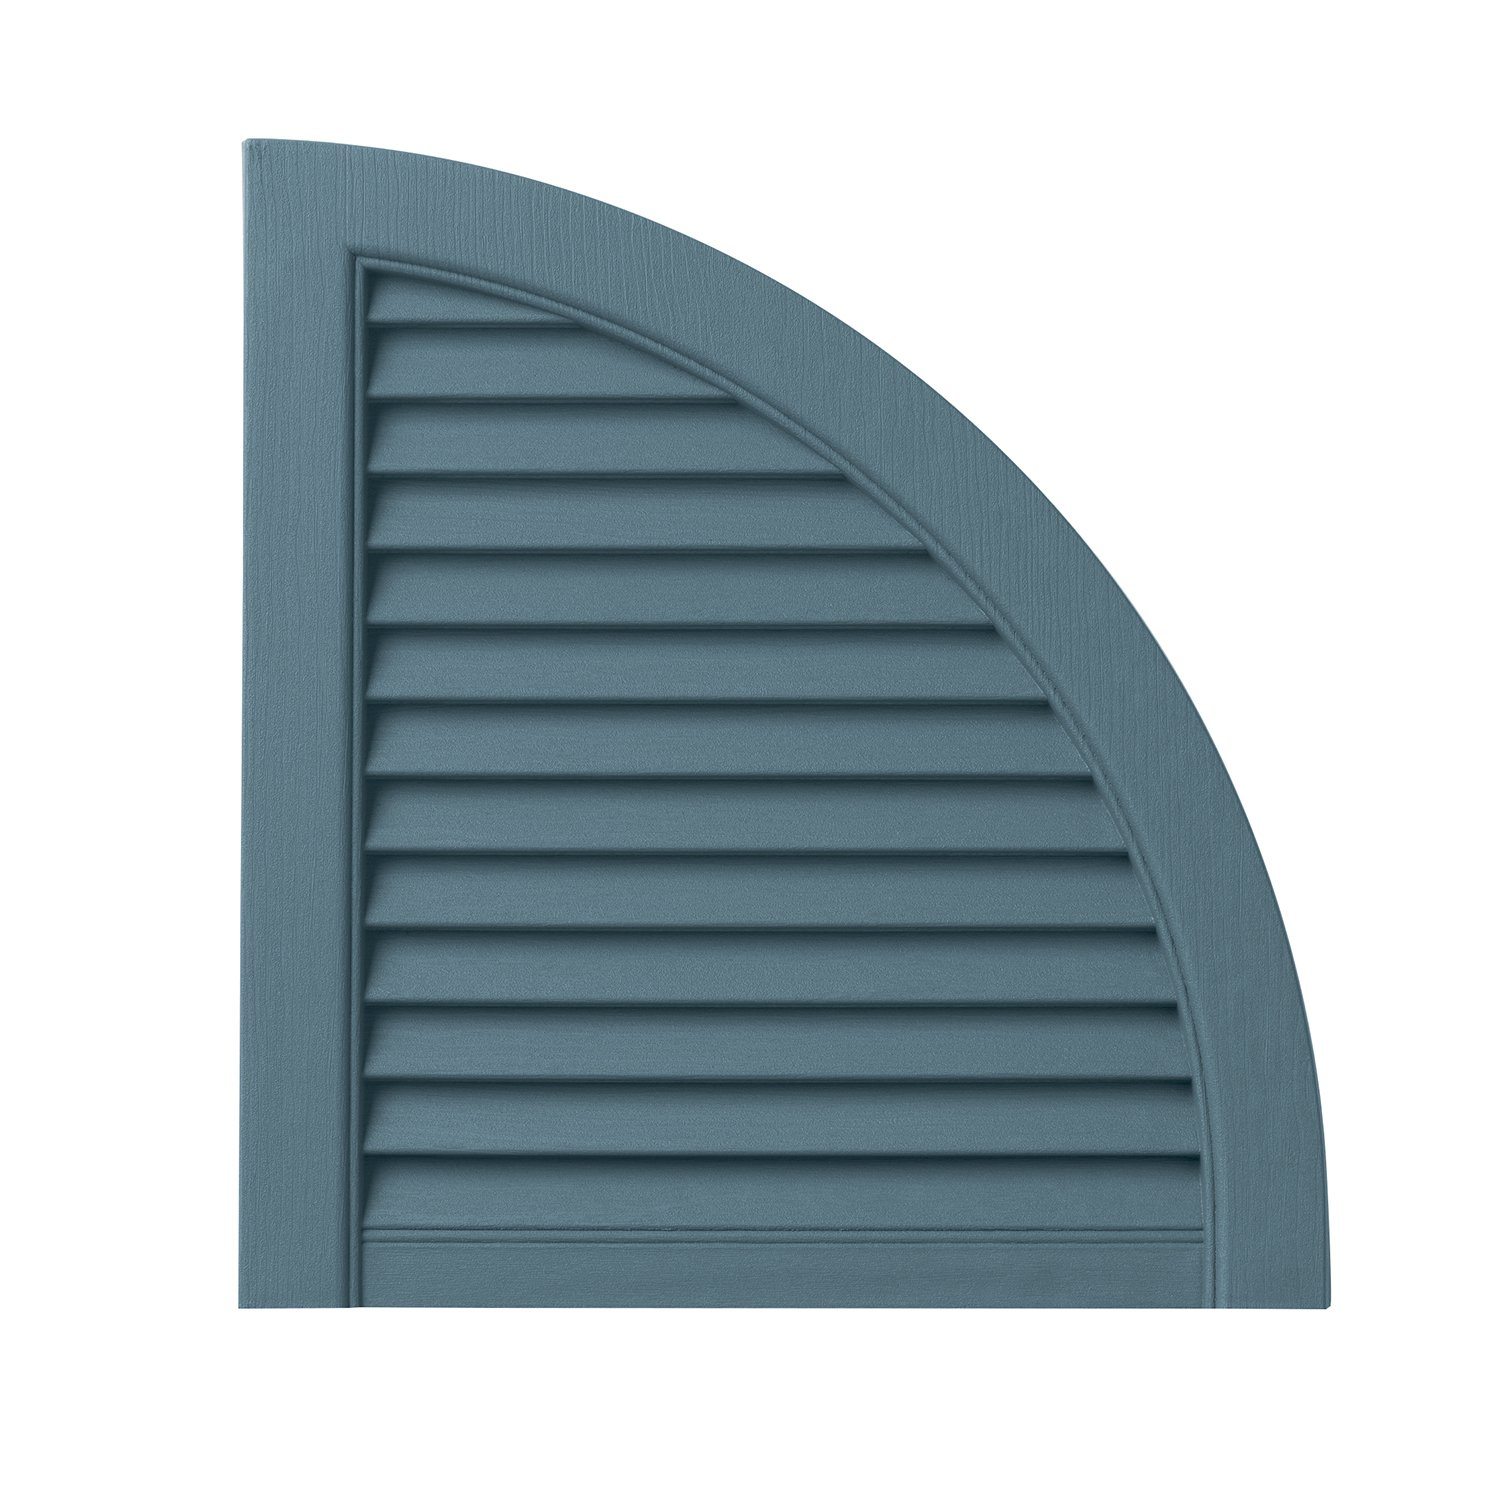 Ply Gem Shutters and Accents ARCH15LV BLU Open Louvered Arch Top, 15'', Coastal Blue